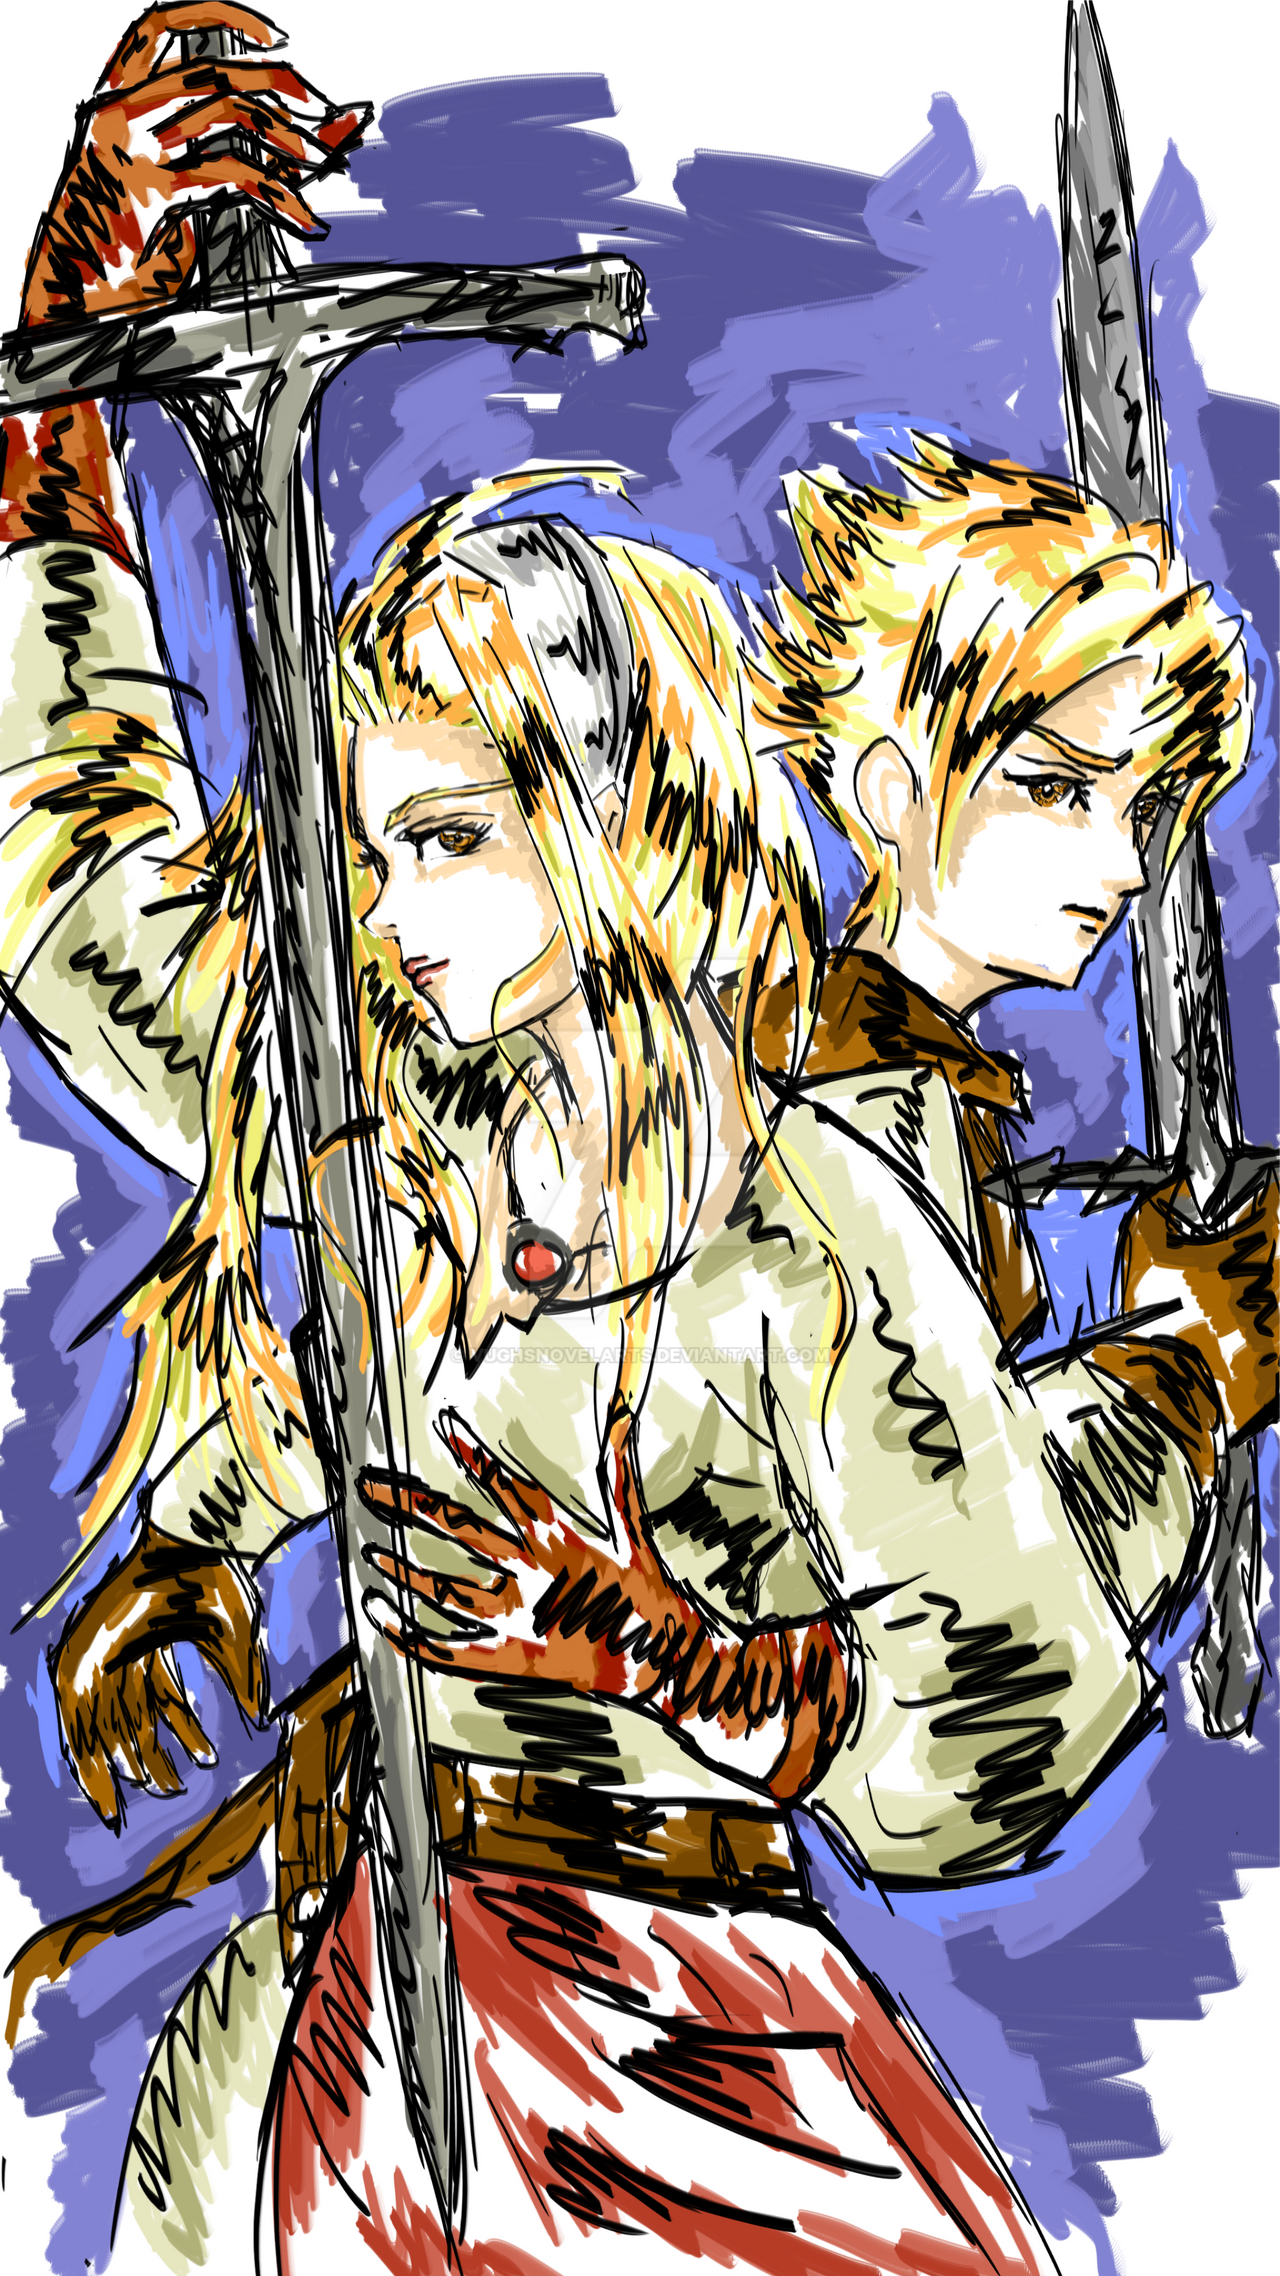 Siblings from Tactics Ogre let us cling together by